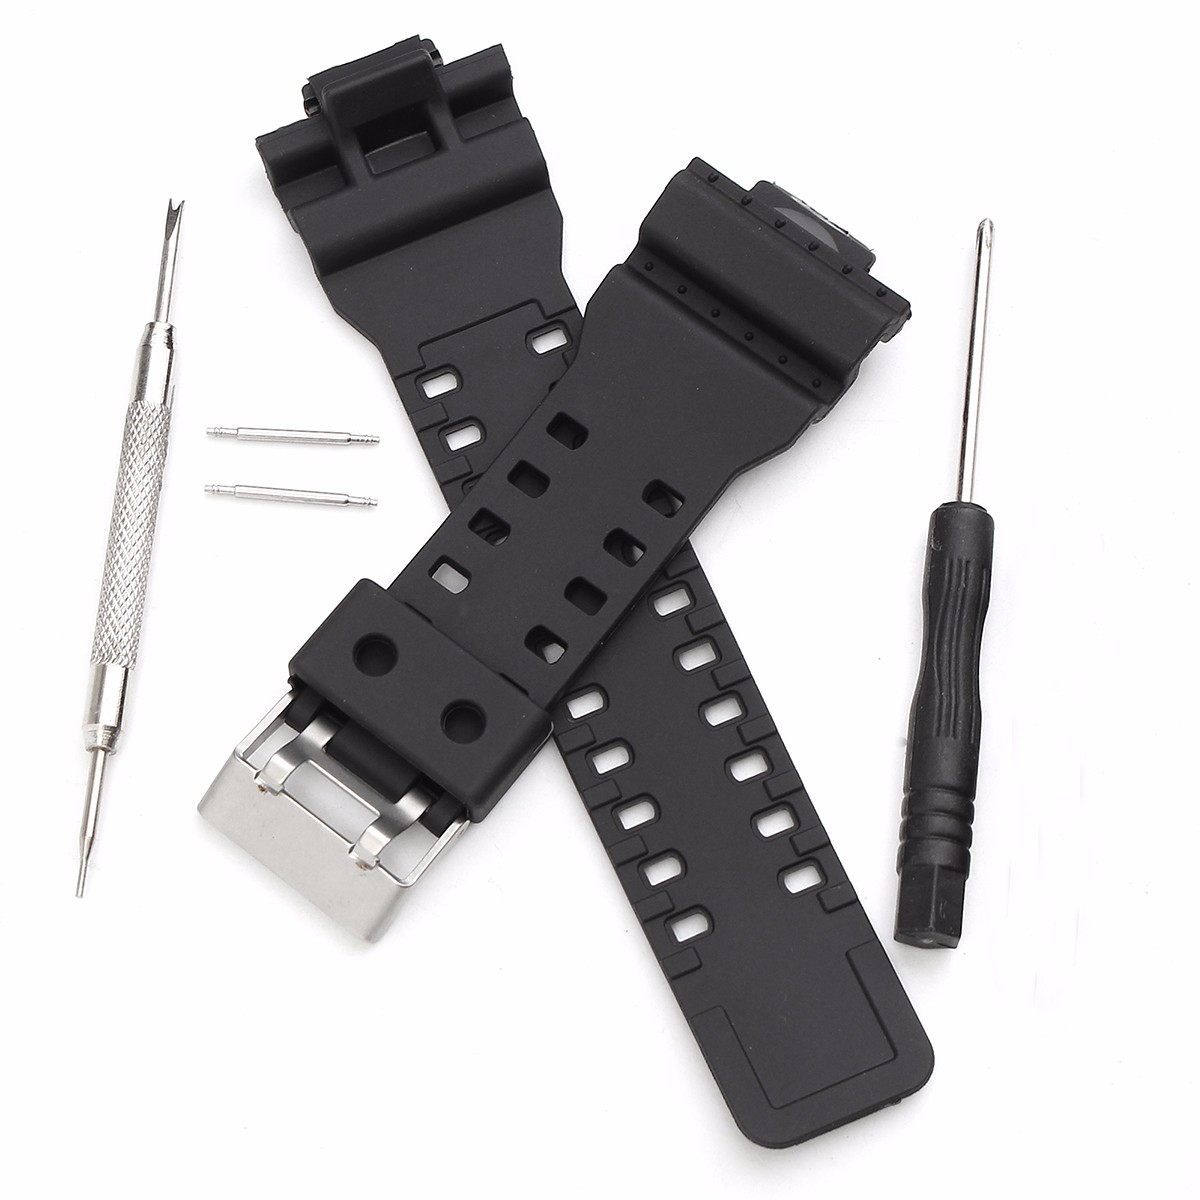 16mm Black Watch Bands Silicone Rubber Replacement Watch Straps Set With Stainless Steel Buckle 2pcs pins Tools isunzun watch bands for tissot 1853 t045 407a t045 harbor series steel strip brand watch straps stainless steel watch chain